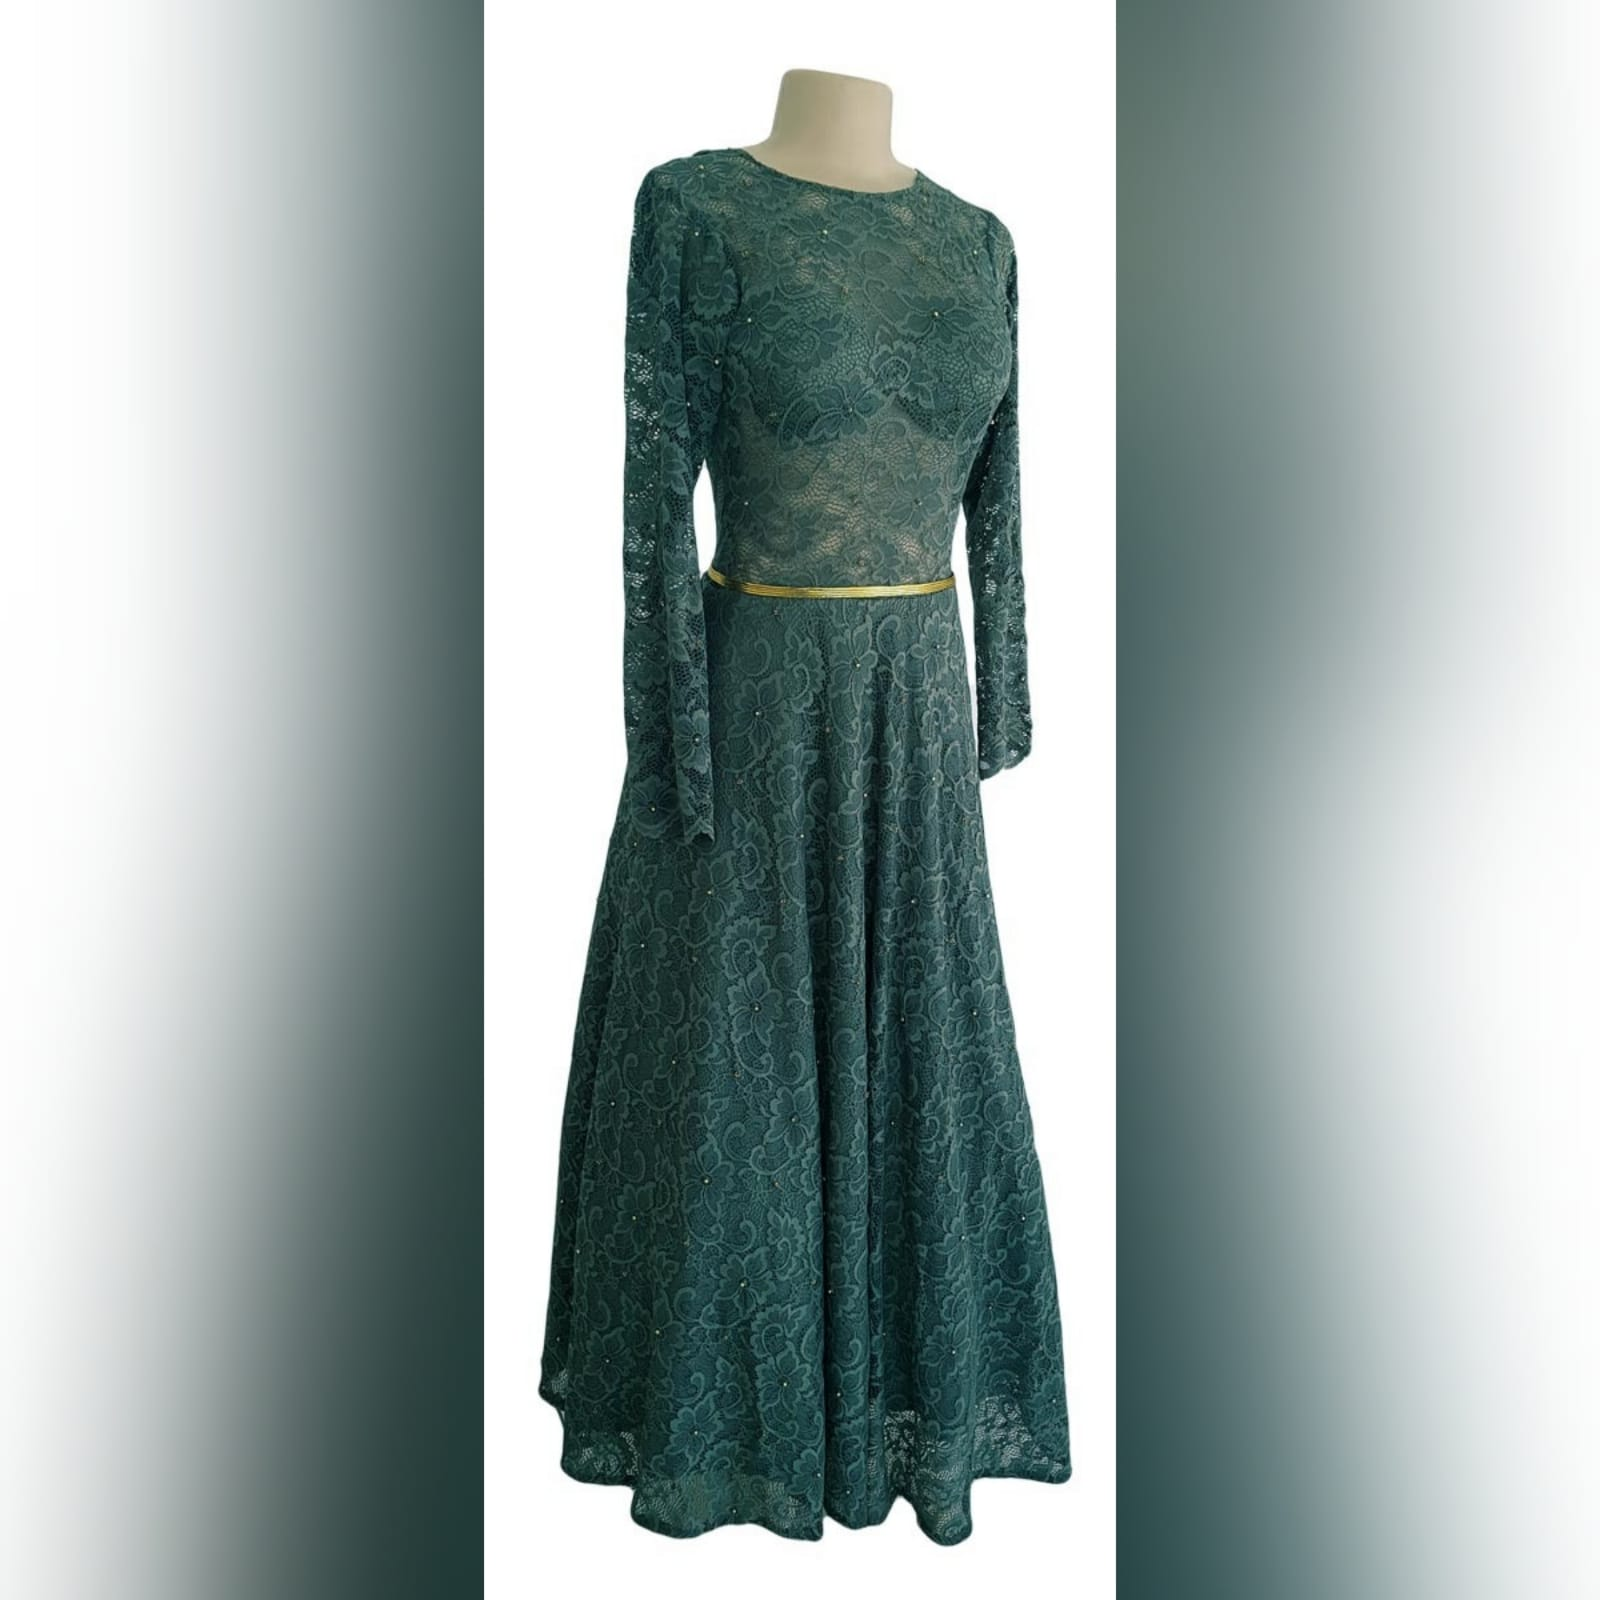 Tea length fully lace olive green evening dress 8 reneilwe looked charming with her tea length fully lace olive green evening dress. Bodice in sheer lace with long sleeves and open back for a feminine touch. With scattered gold beads and a thin removable gold belt to give it a chic look.